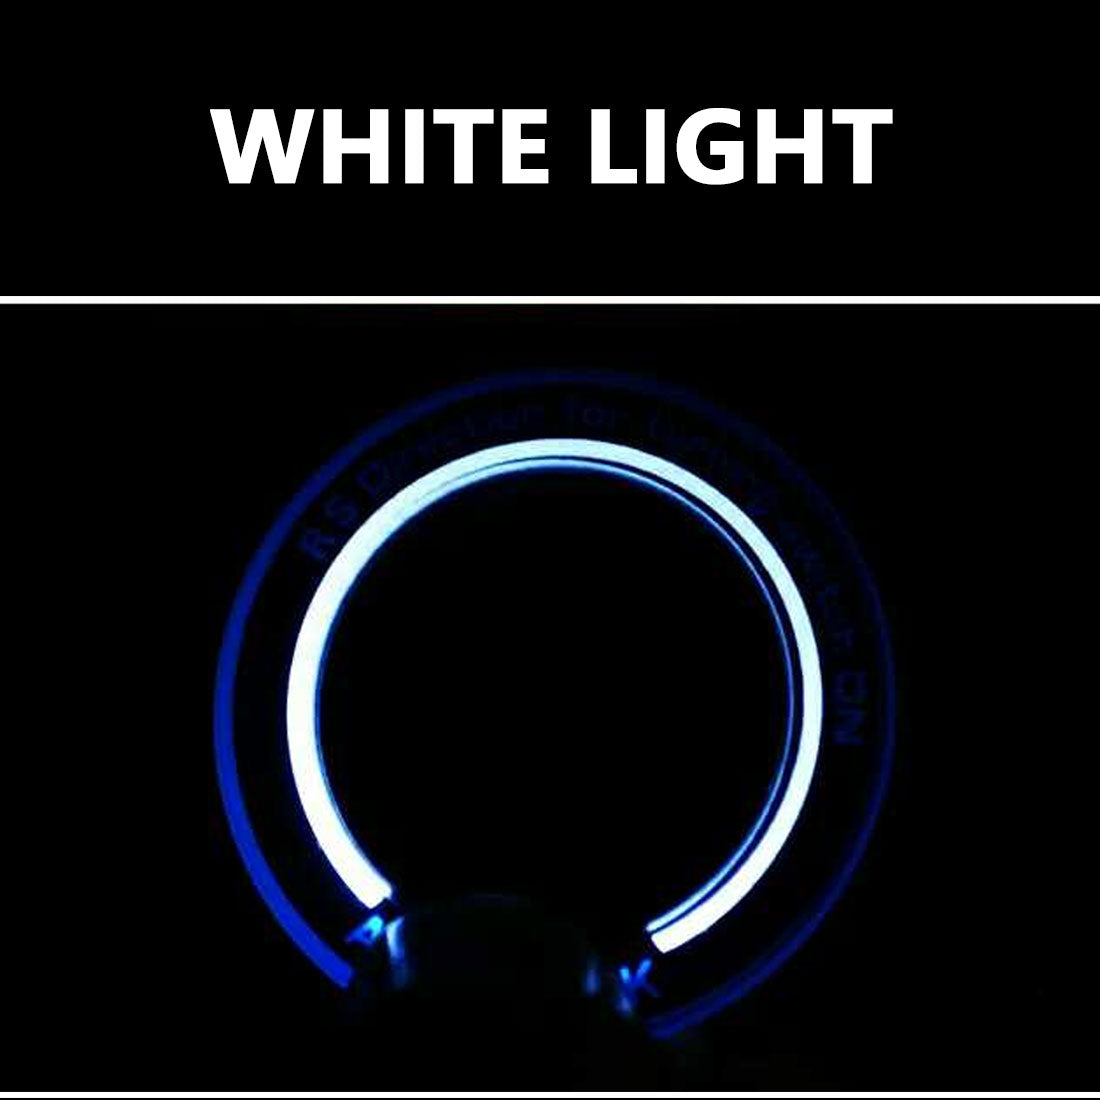 Costbuys  Car ignition key ring led lighting stickers for for auto accessories For Ford Focus 2 Focus 3 Kuga Mondeo - white ligh